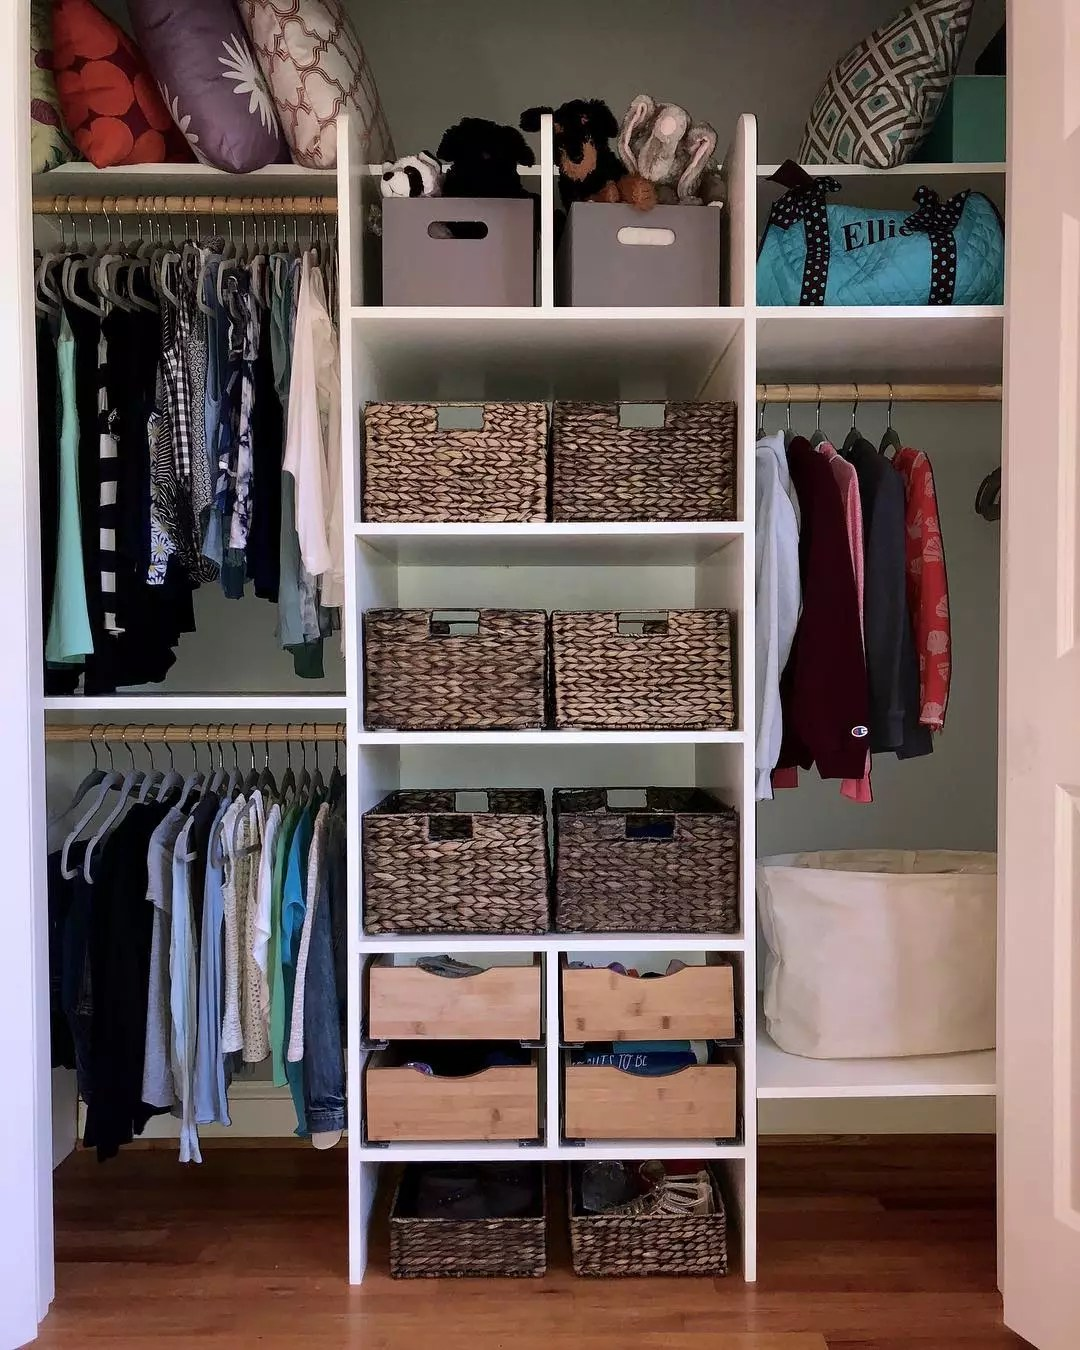 Closet with Hanging Shelves, Storage Boxes, and Other Storage. Photo by Instagram user @shelfspaceorganizing